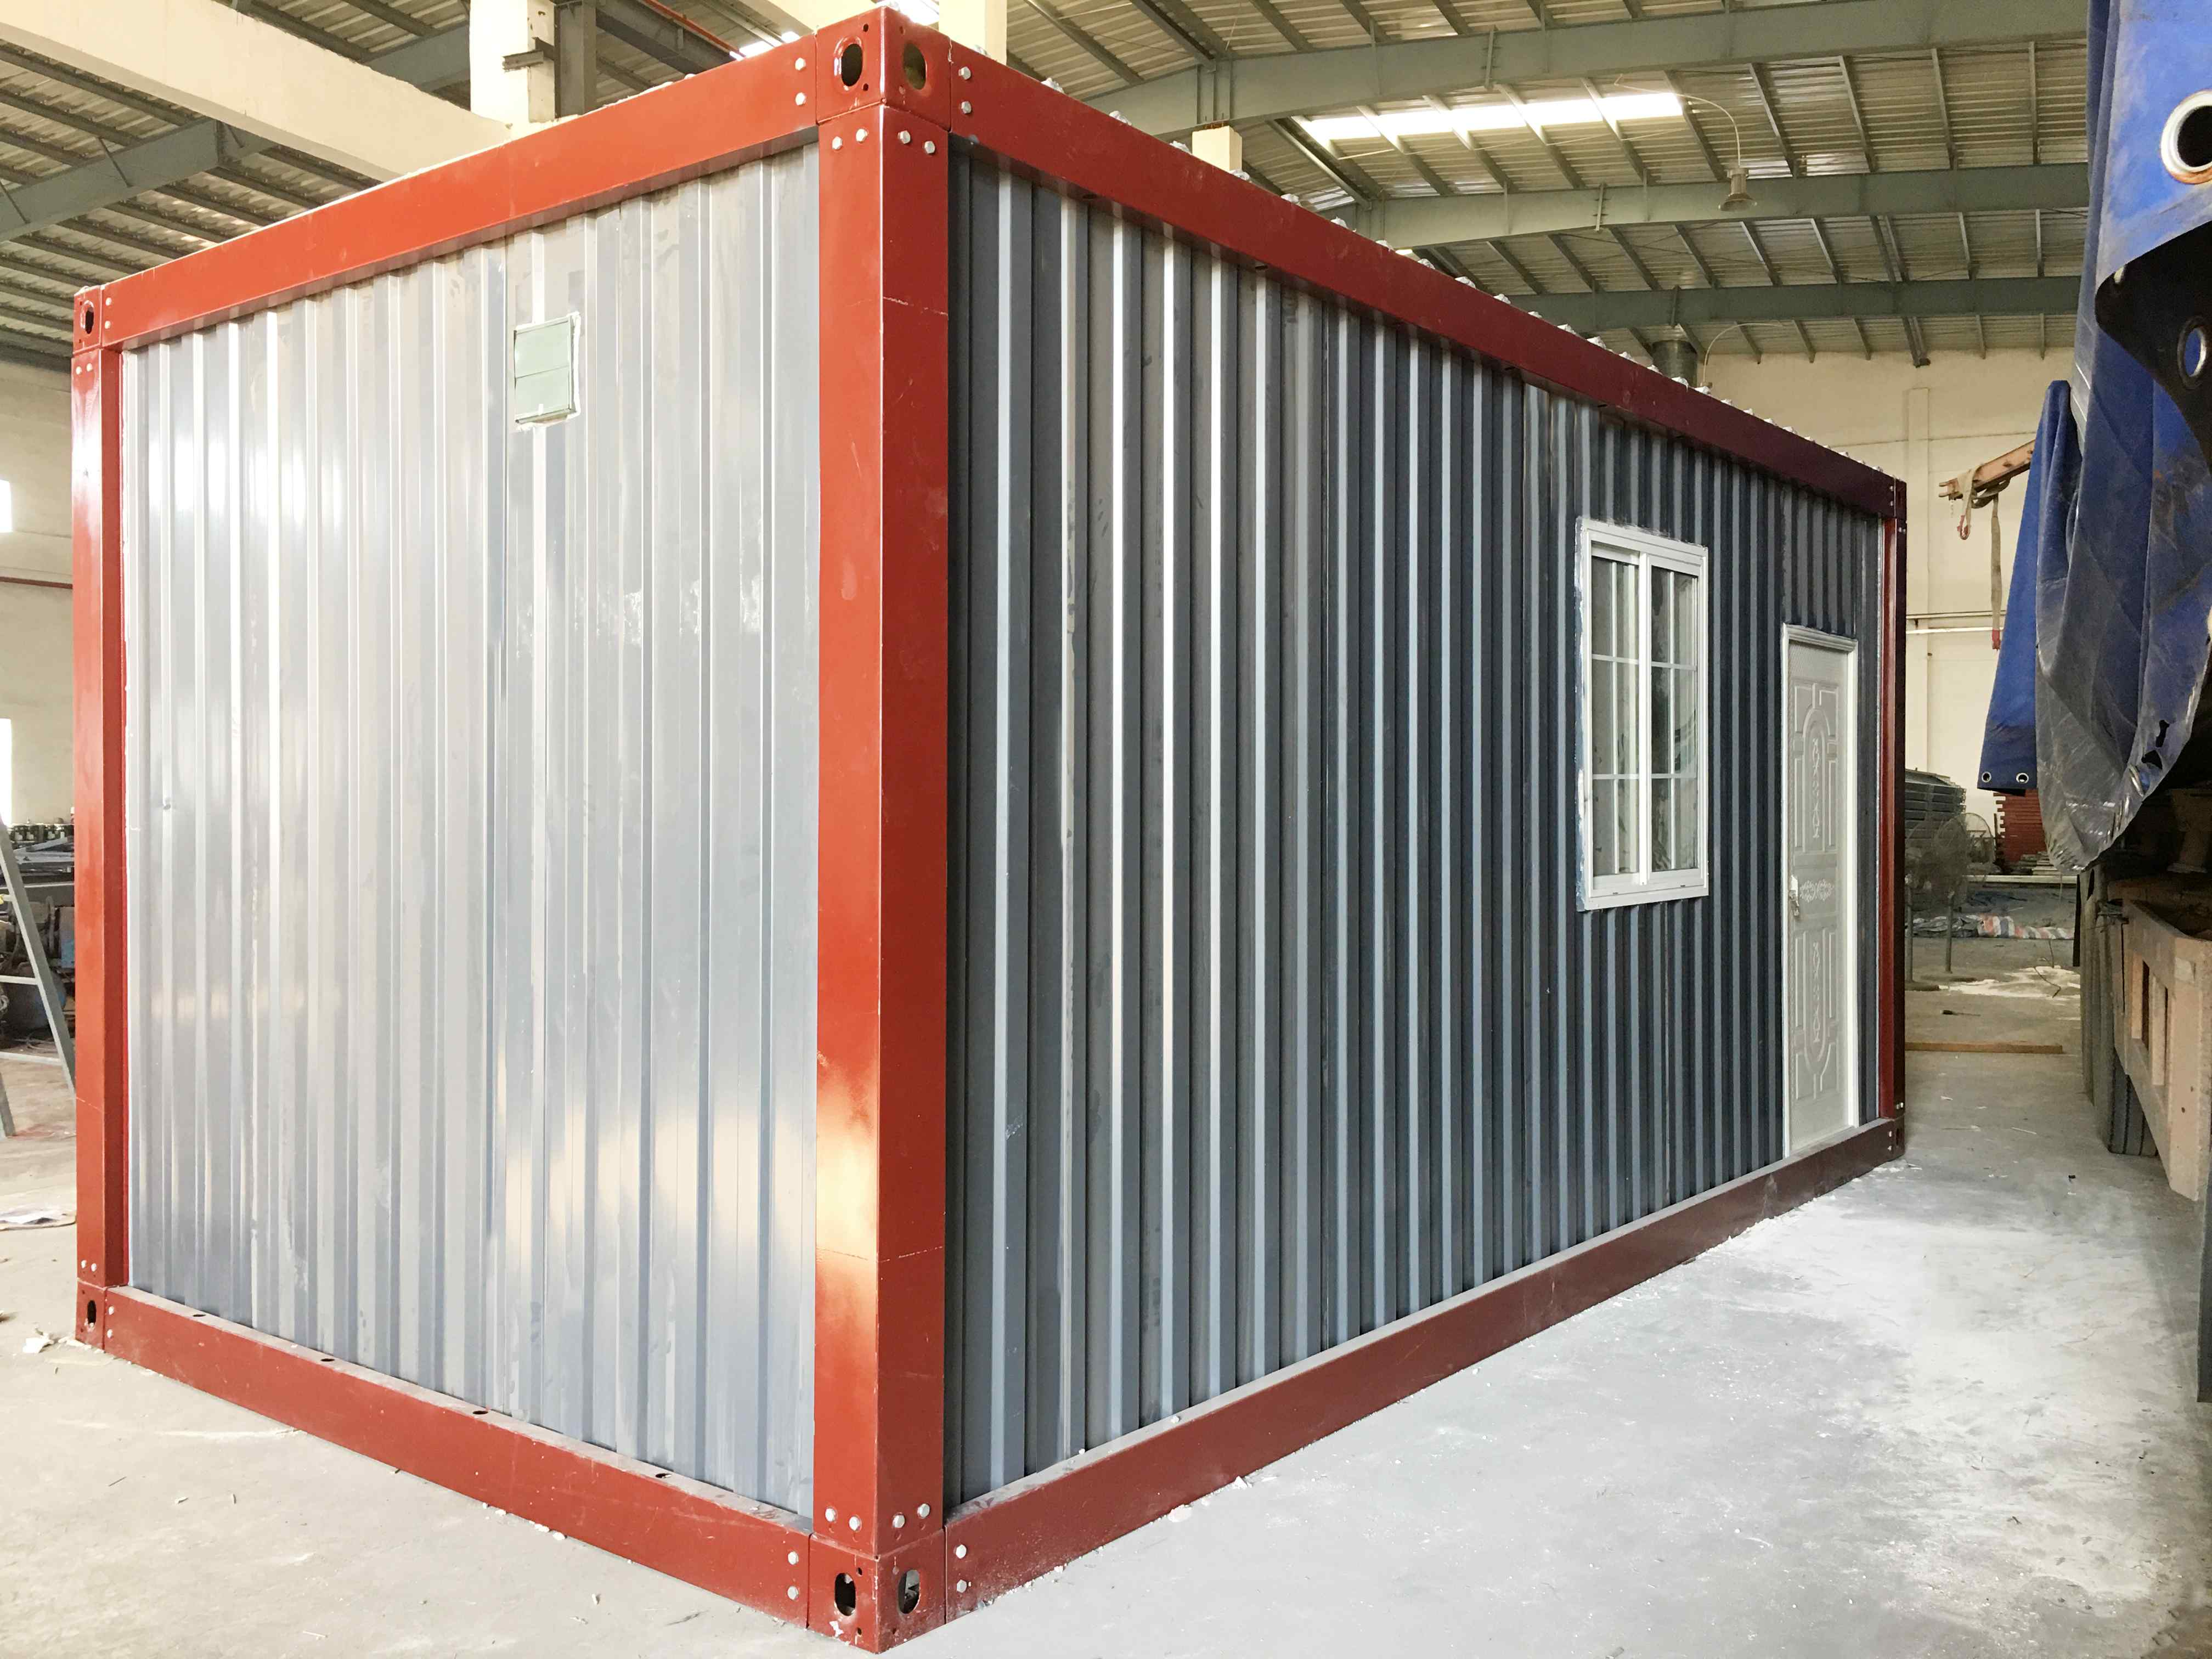 WELLCAMP Prefabricated Detachable Container House with Bathroom & Toilet -D32 Detachable Container House image12